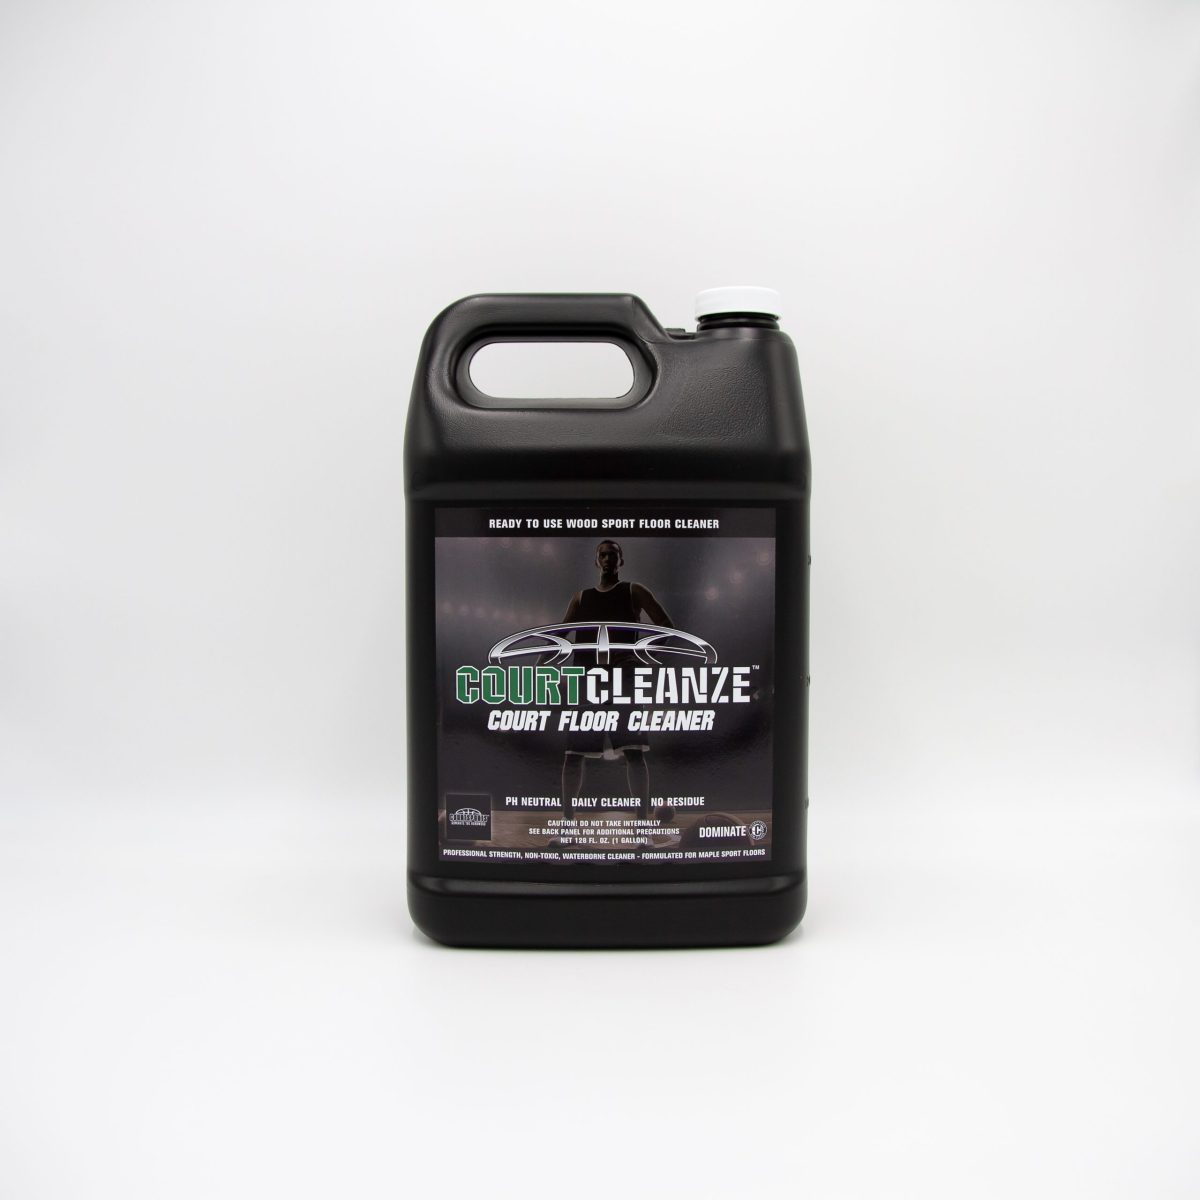 COURTCLEANZE COURT FLOOR CLEANER READY-TO-USE-REFILL FOR CLEANING BASKETBALL GYM FLOORS